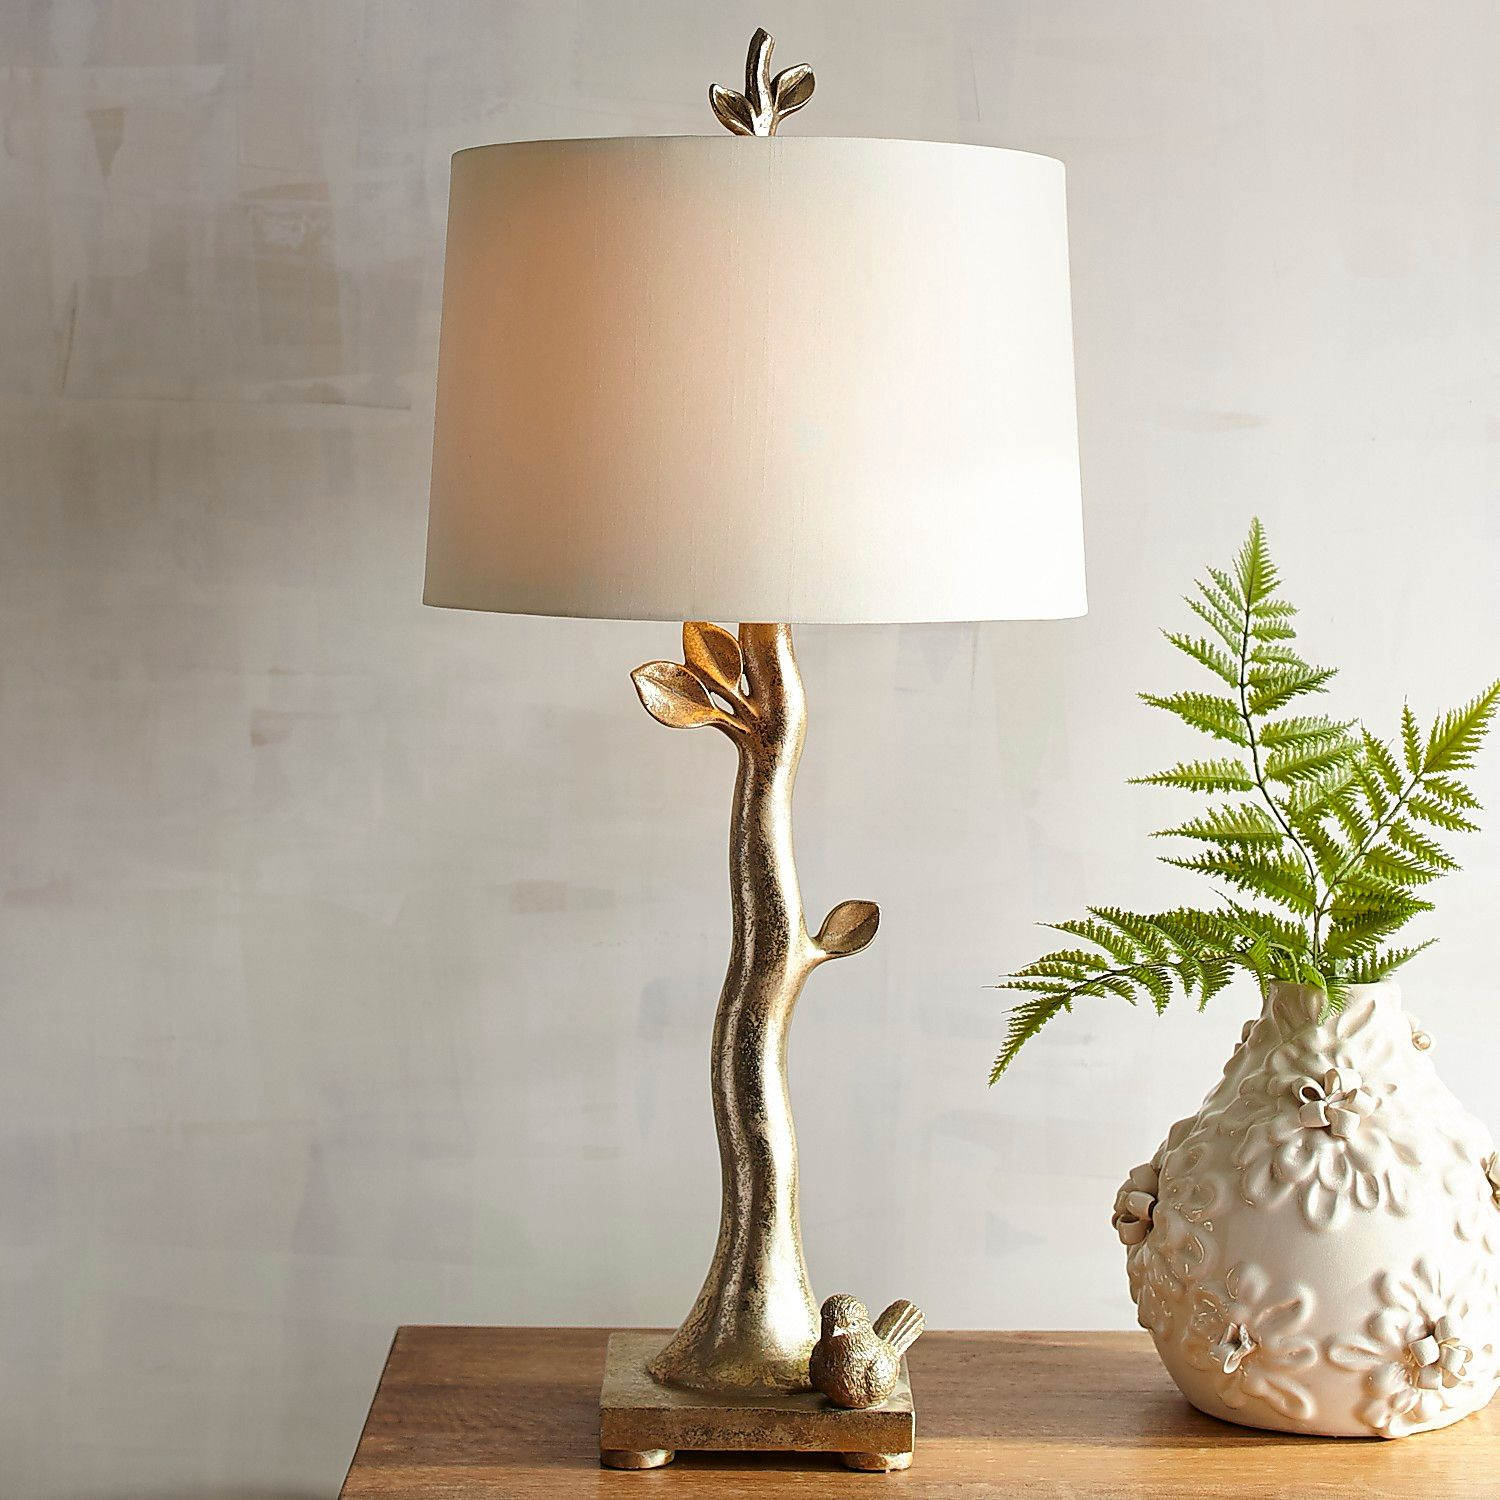 bird branch table lamp pier imports one accent lamps with hidden chairs sisal runner dining six marble pedestal coffee glass bunnings outdoor sun lounges wedding reception